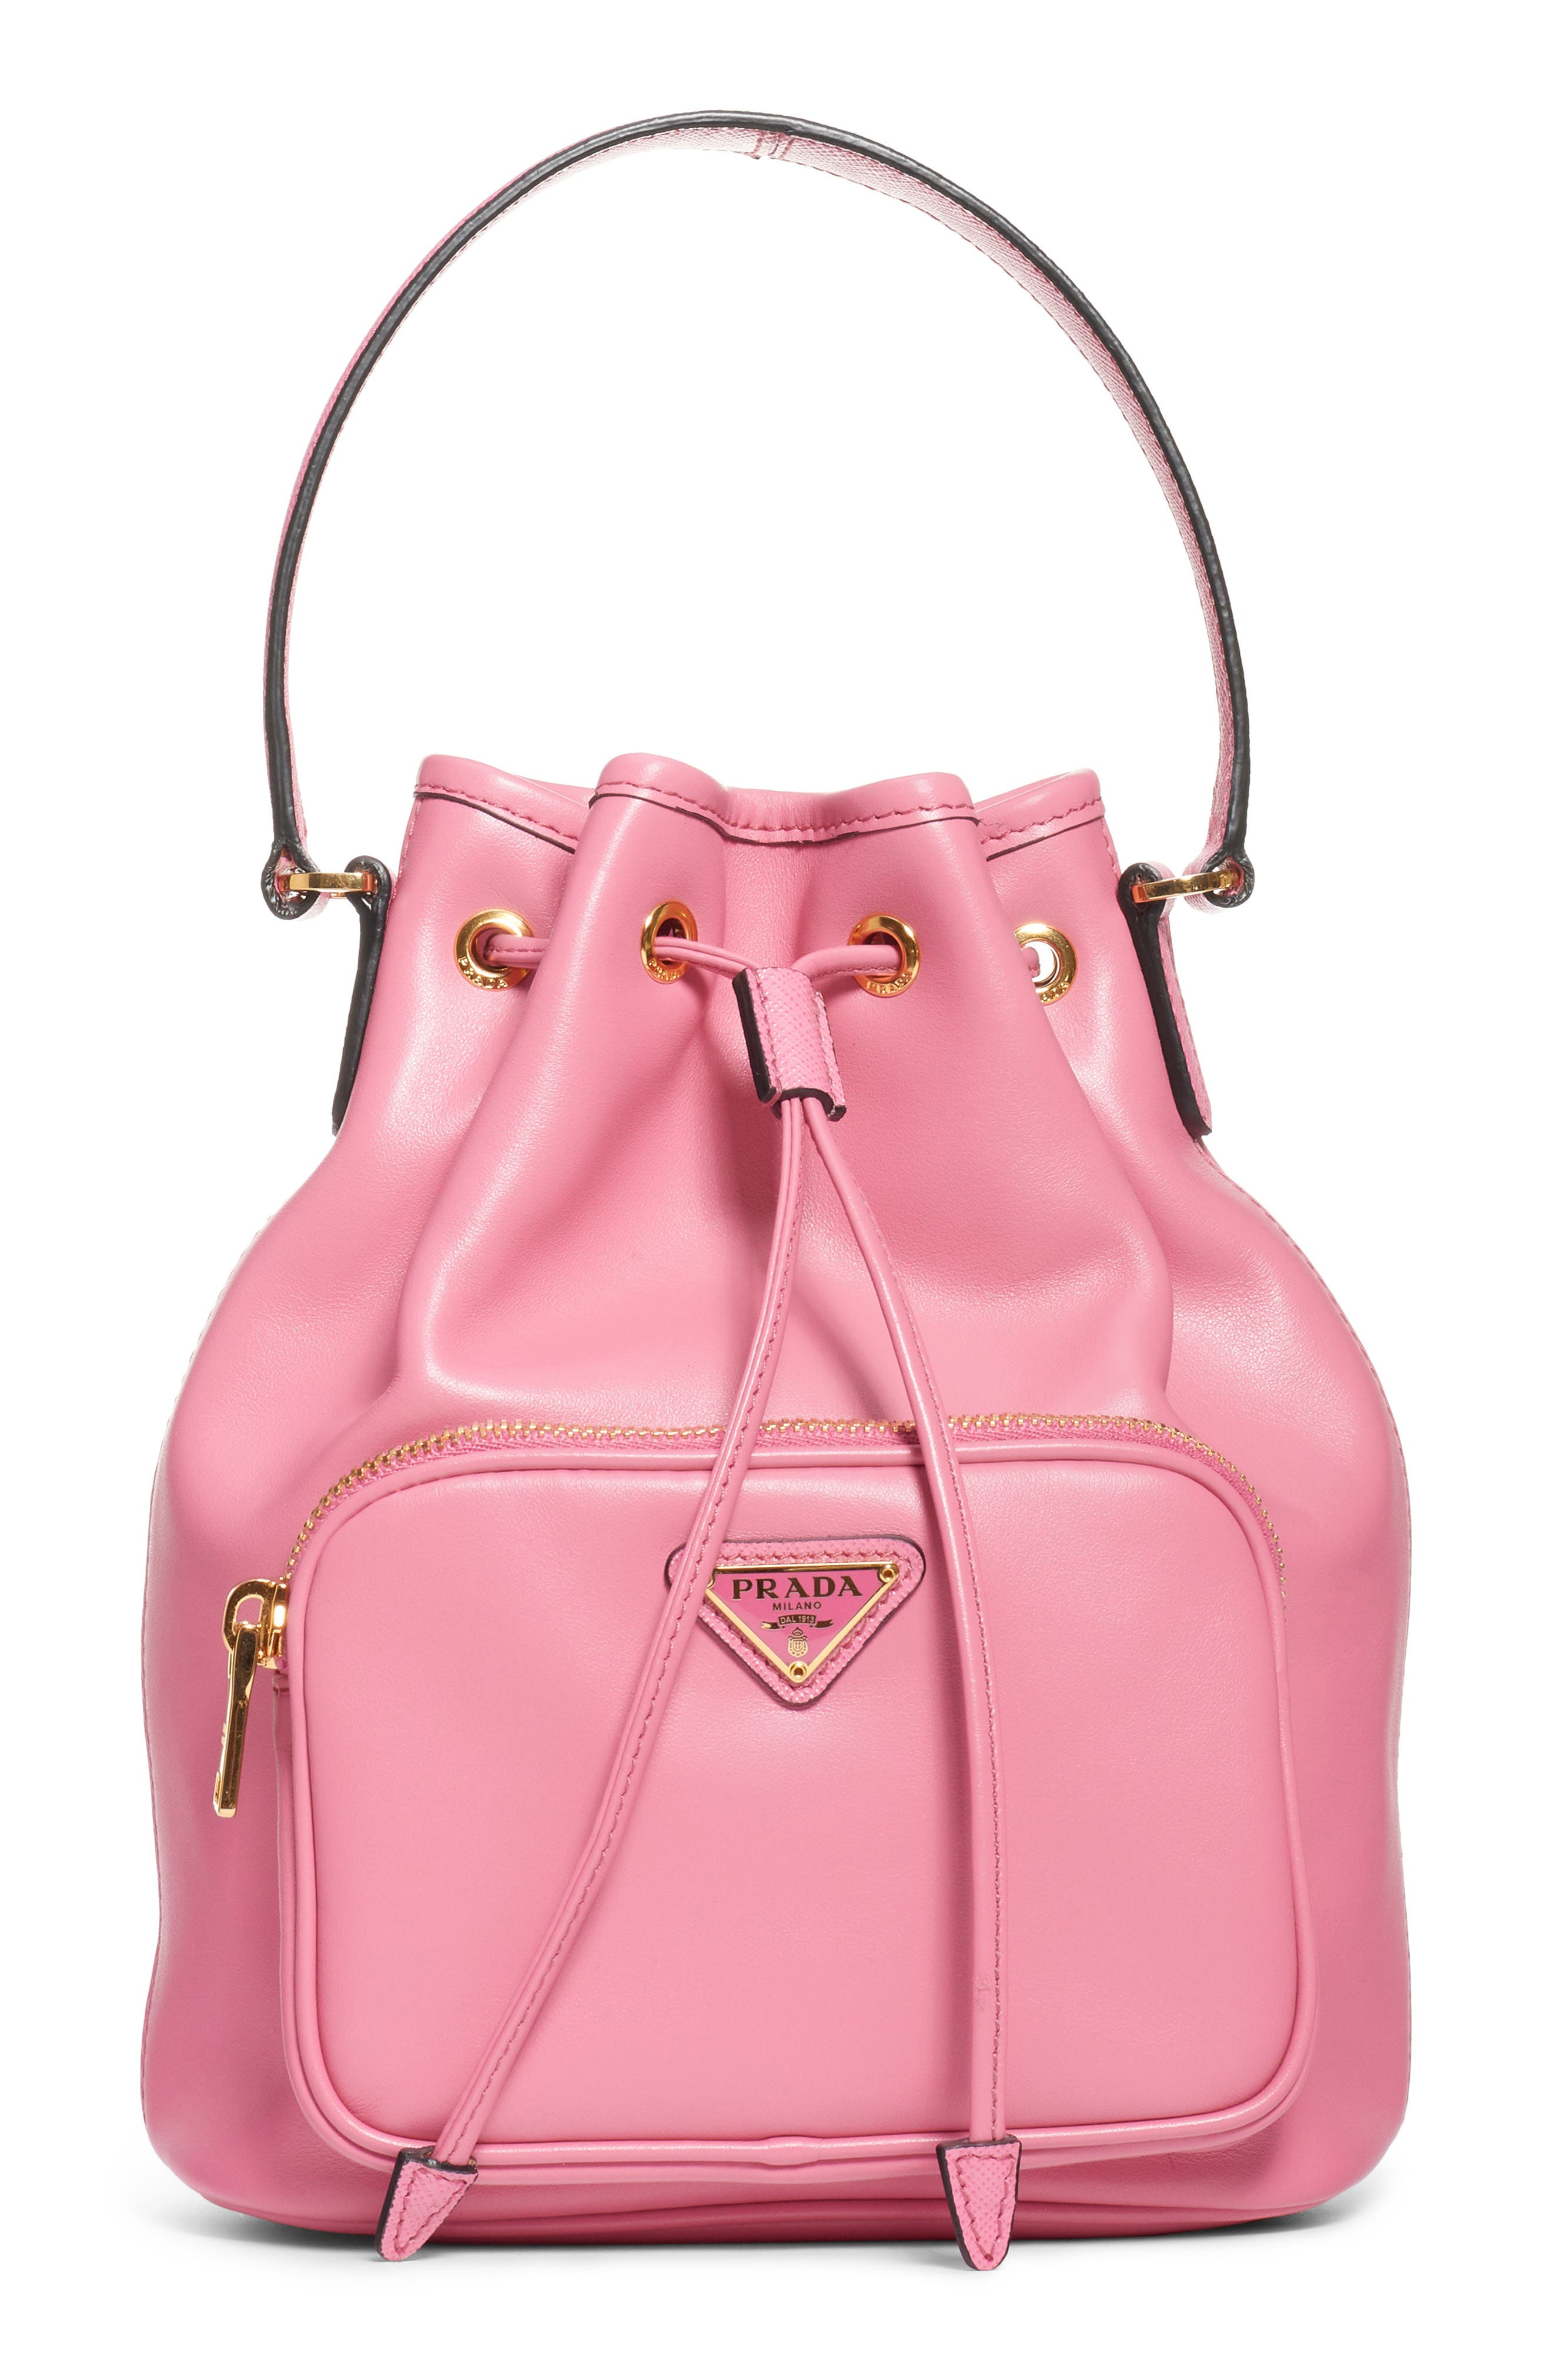 PRADA,                             Leather Bucket Bag,                             Main thumbnail 1, color,                             BEGONIA